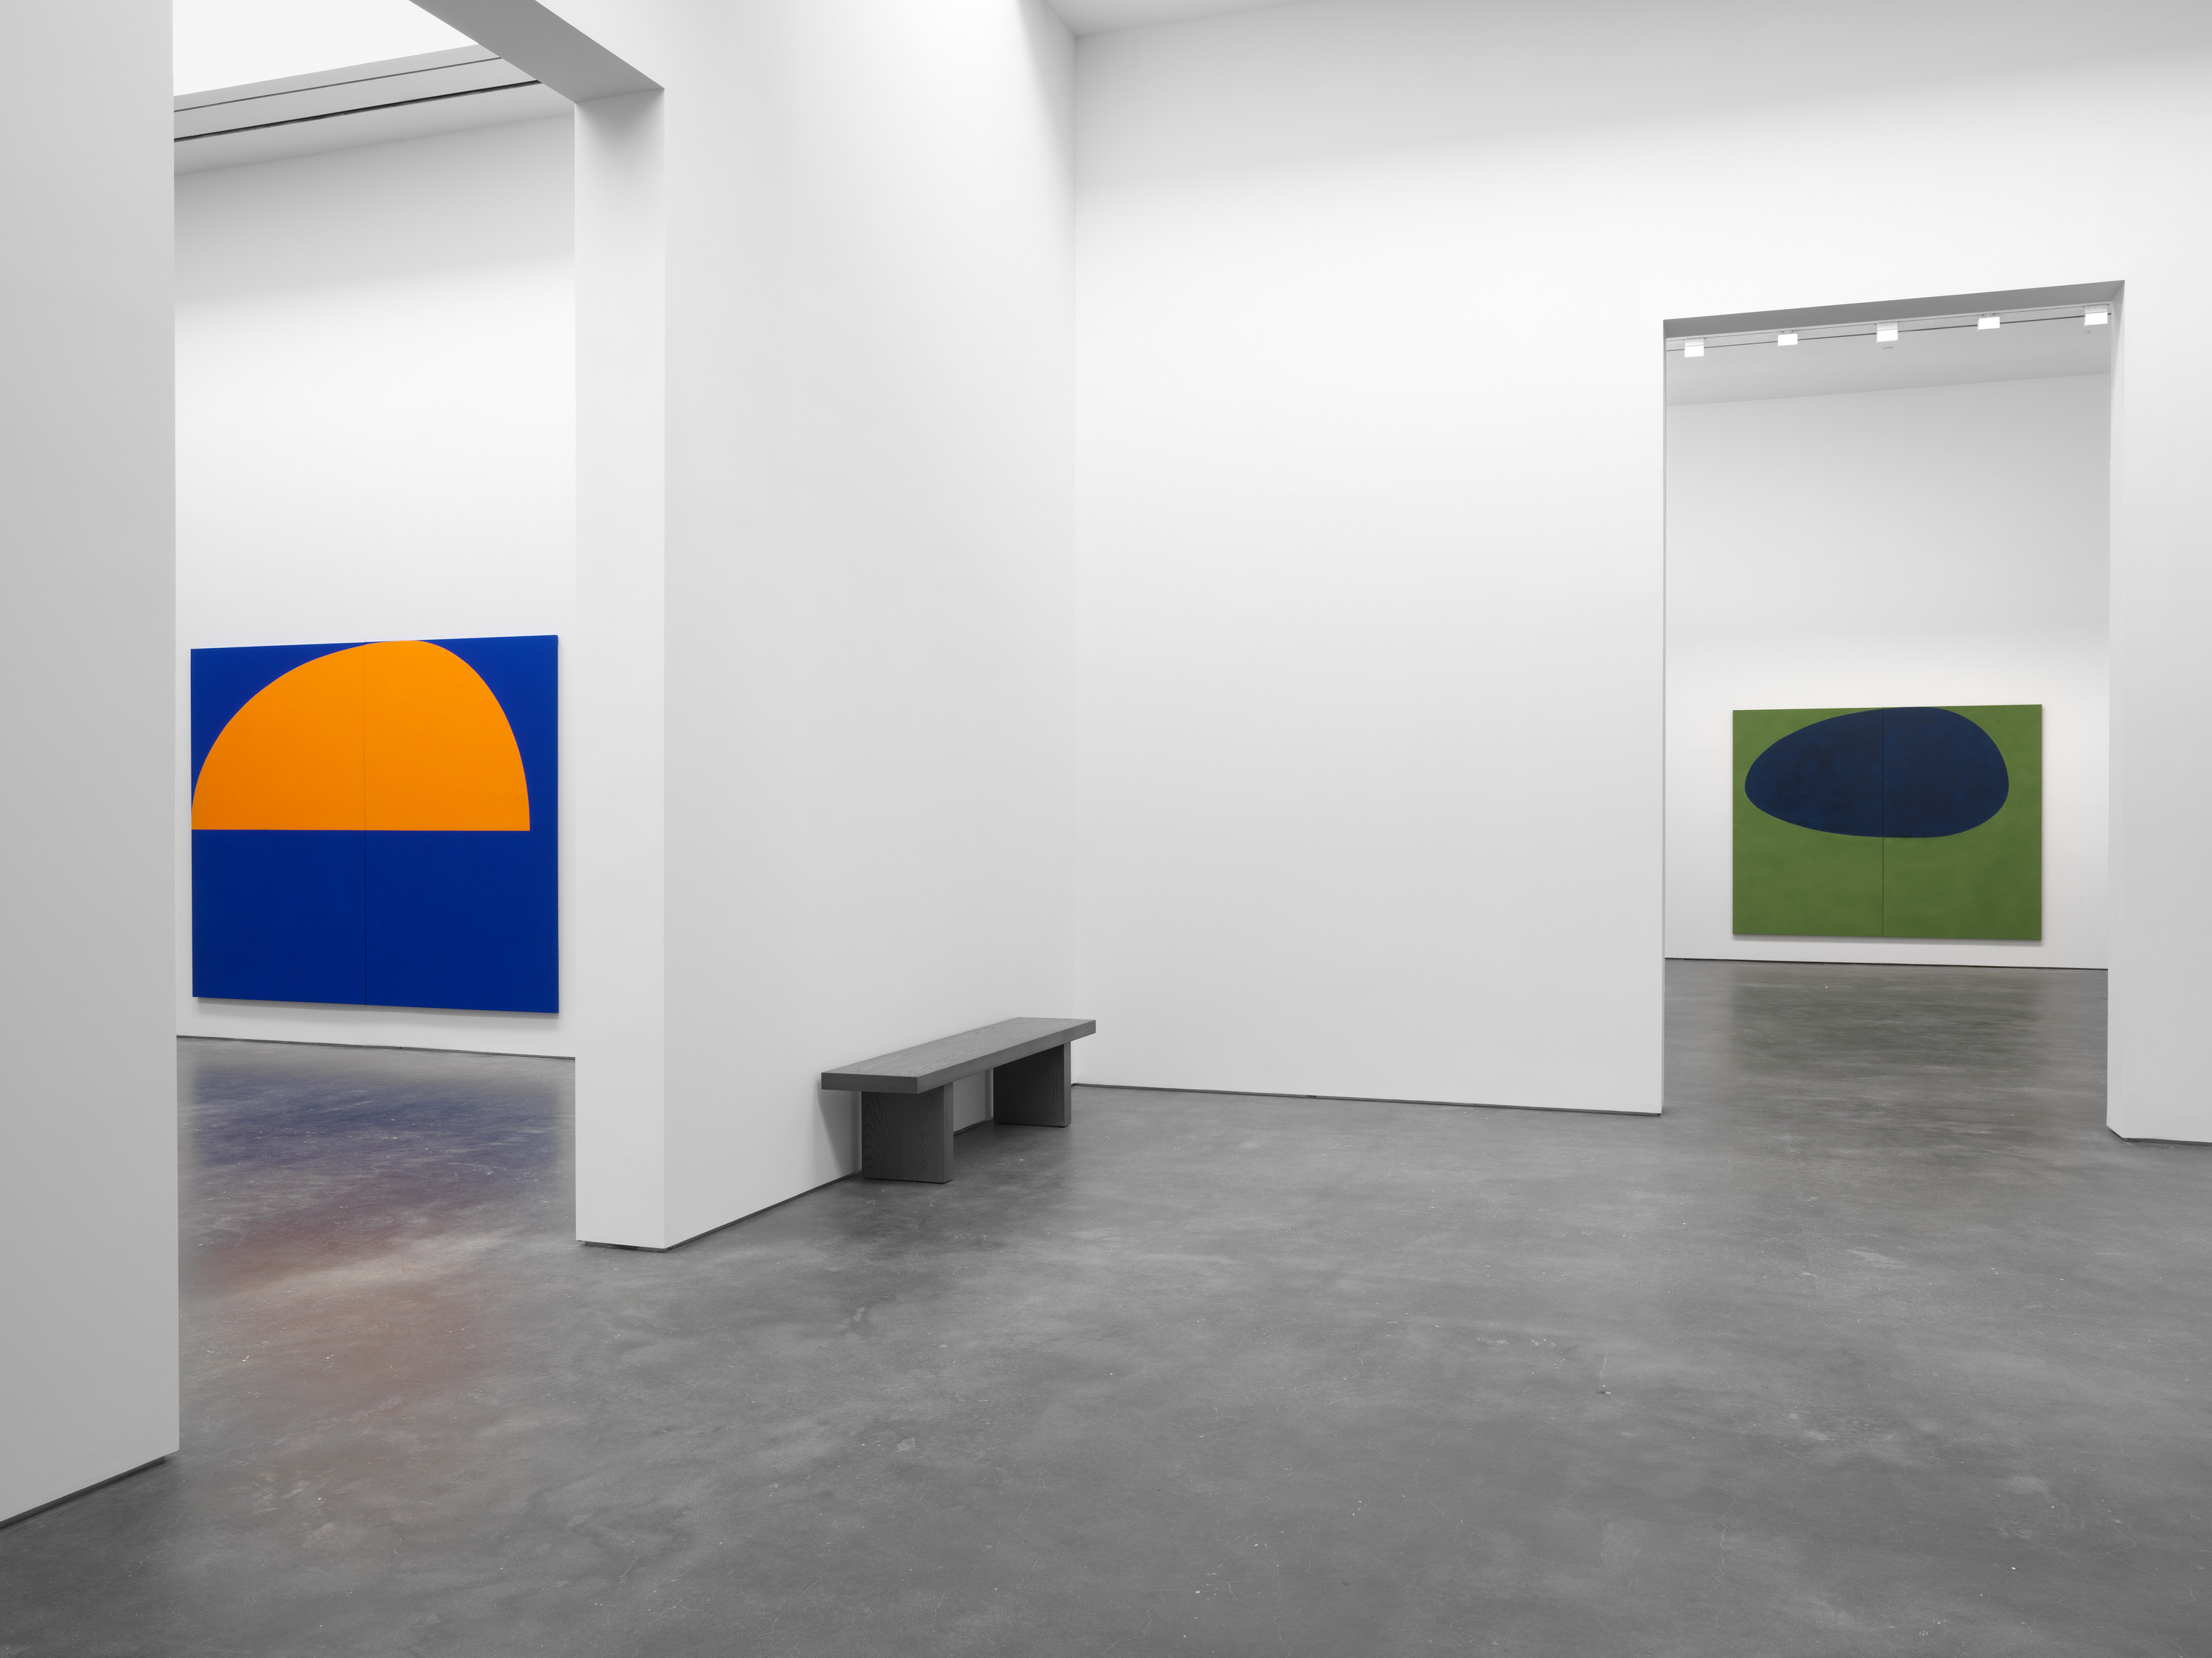 Installation view 8, Suzan Frecon: oil paintings, David Zwirner, New York, 2020 Courtesy David Zwirner